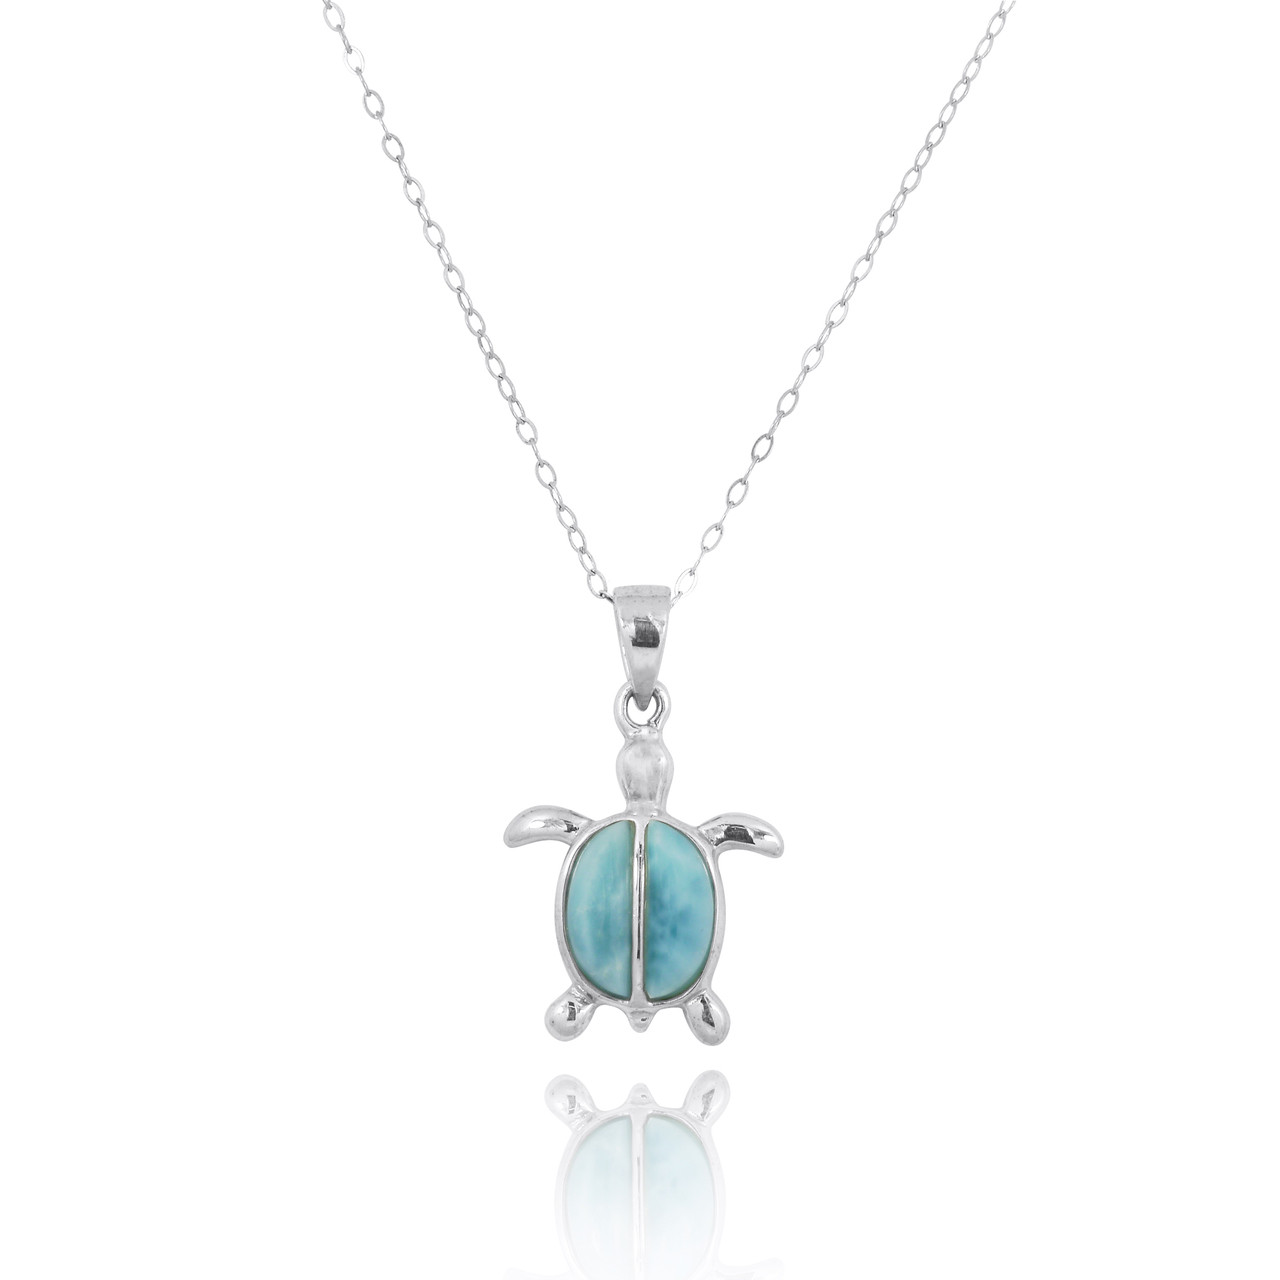 Sterling Silver Turtle with 2 Larimar Stones Pendant